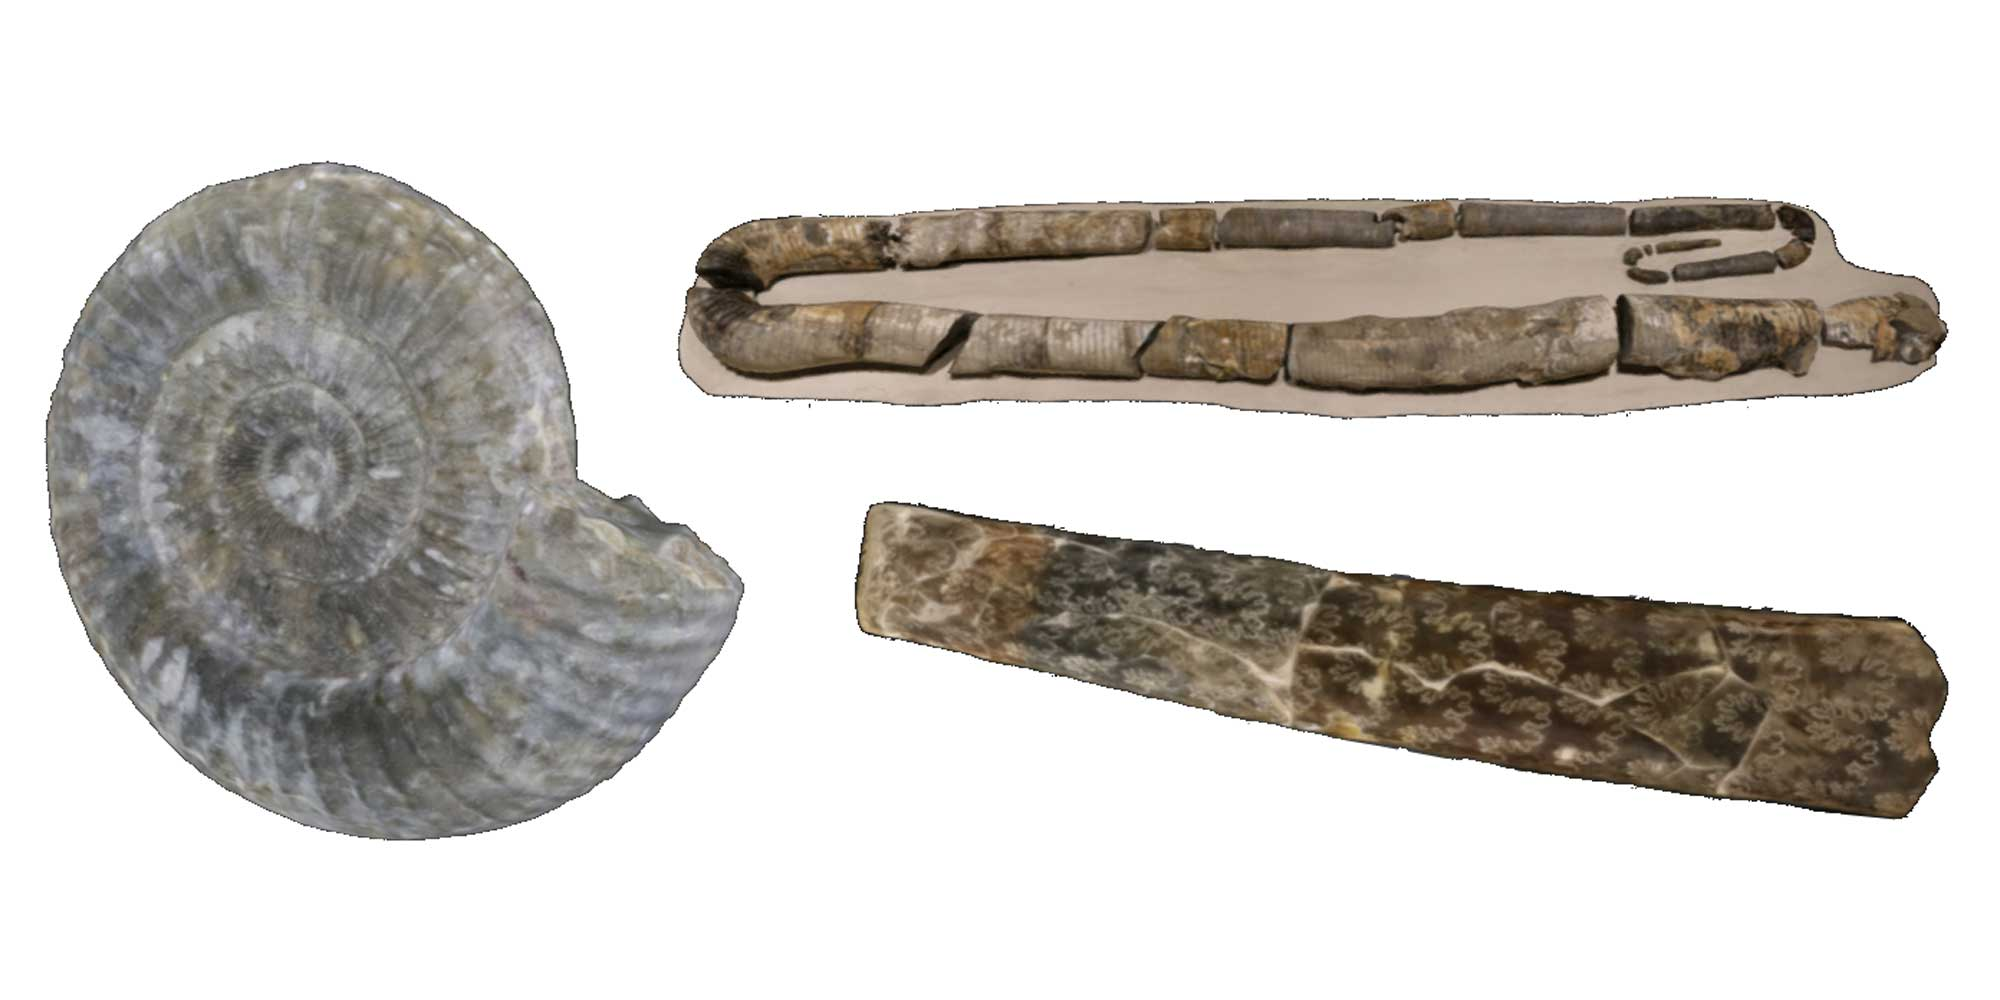 Images of ammonite fossils.